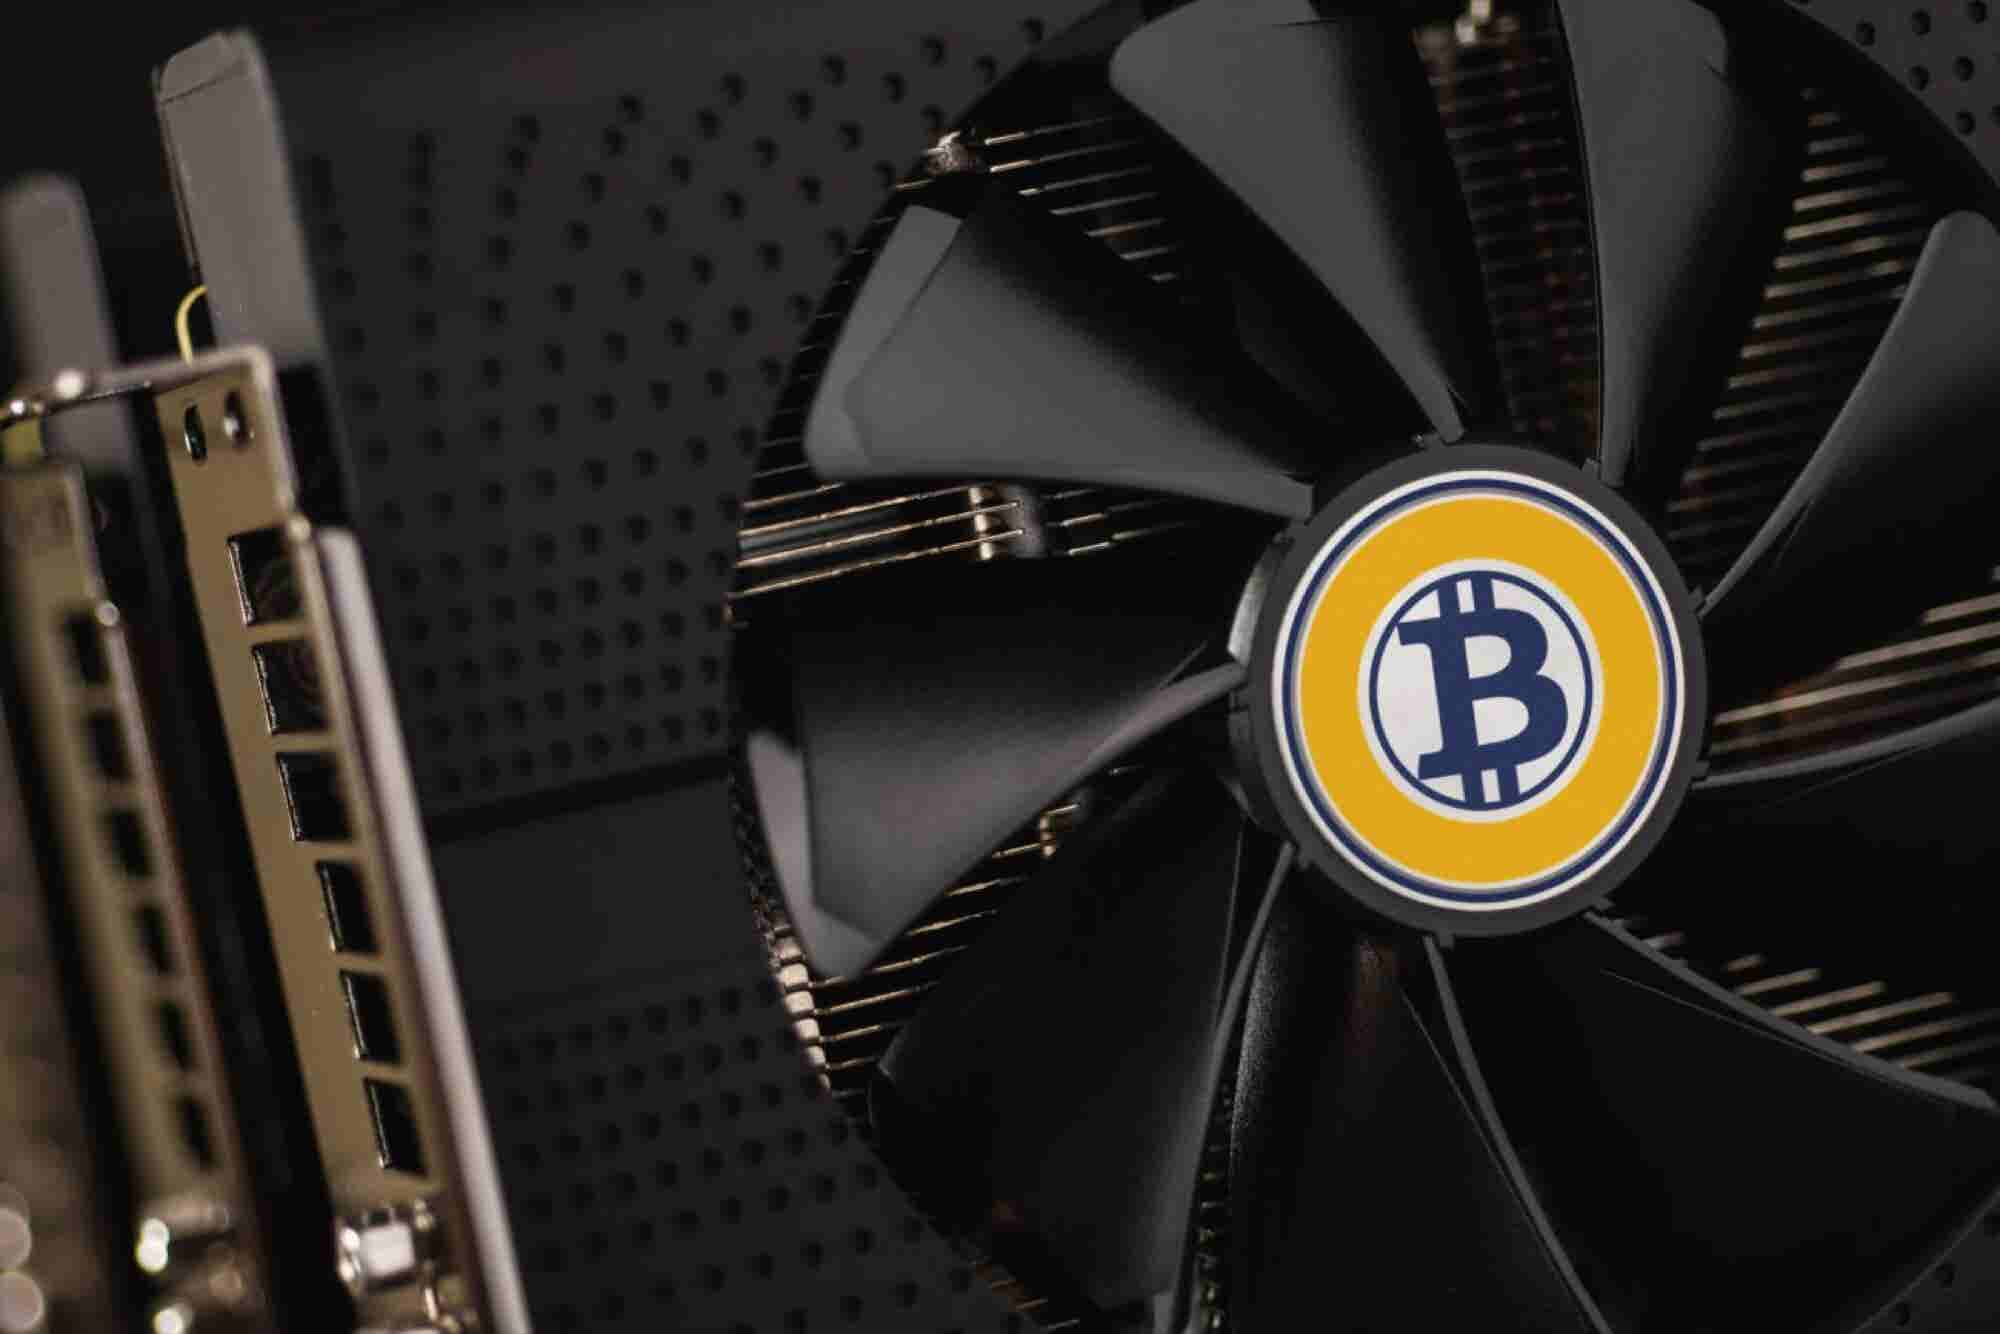 An Easy Guide to 'Crypto-Mining' the Market for What's Come to be Called 'Altcoins'